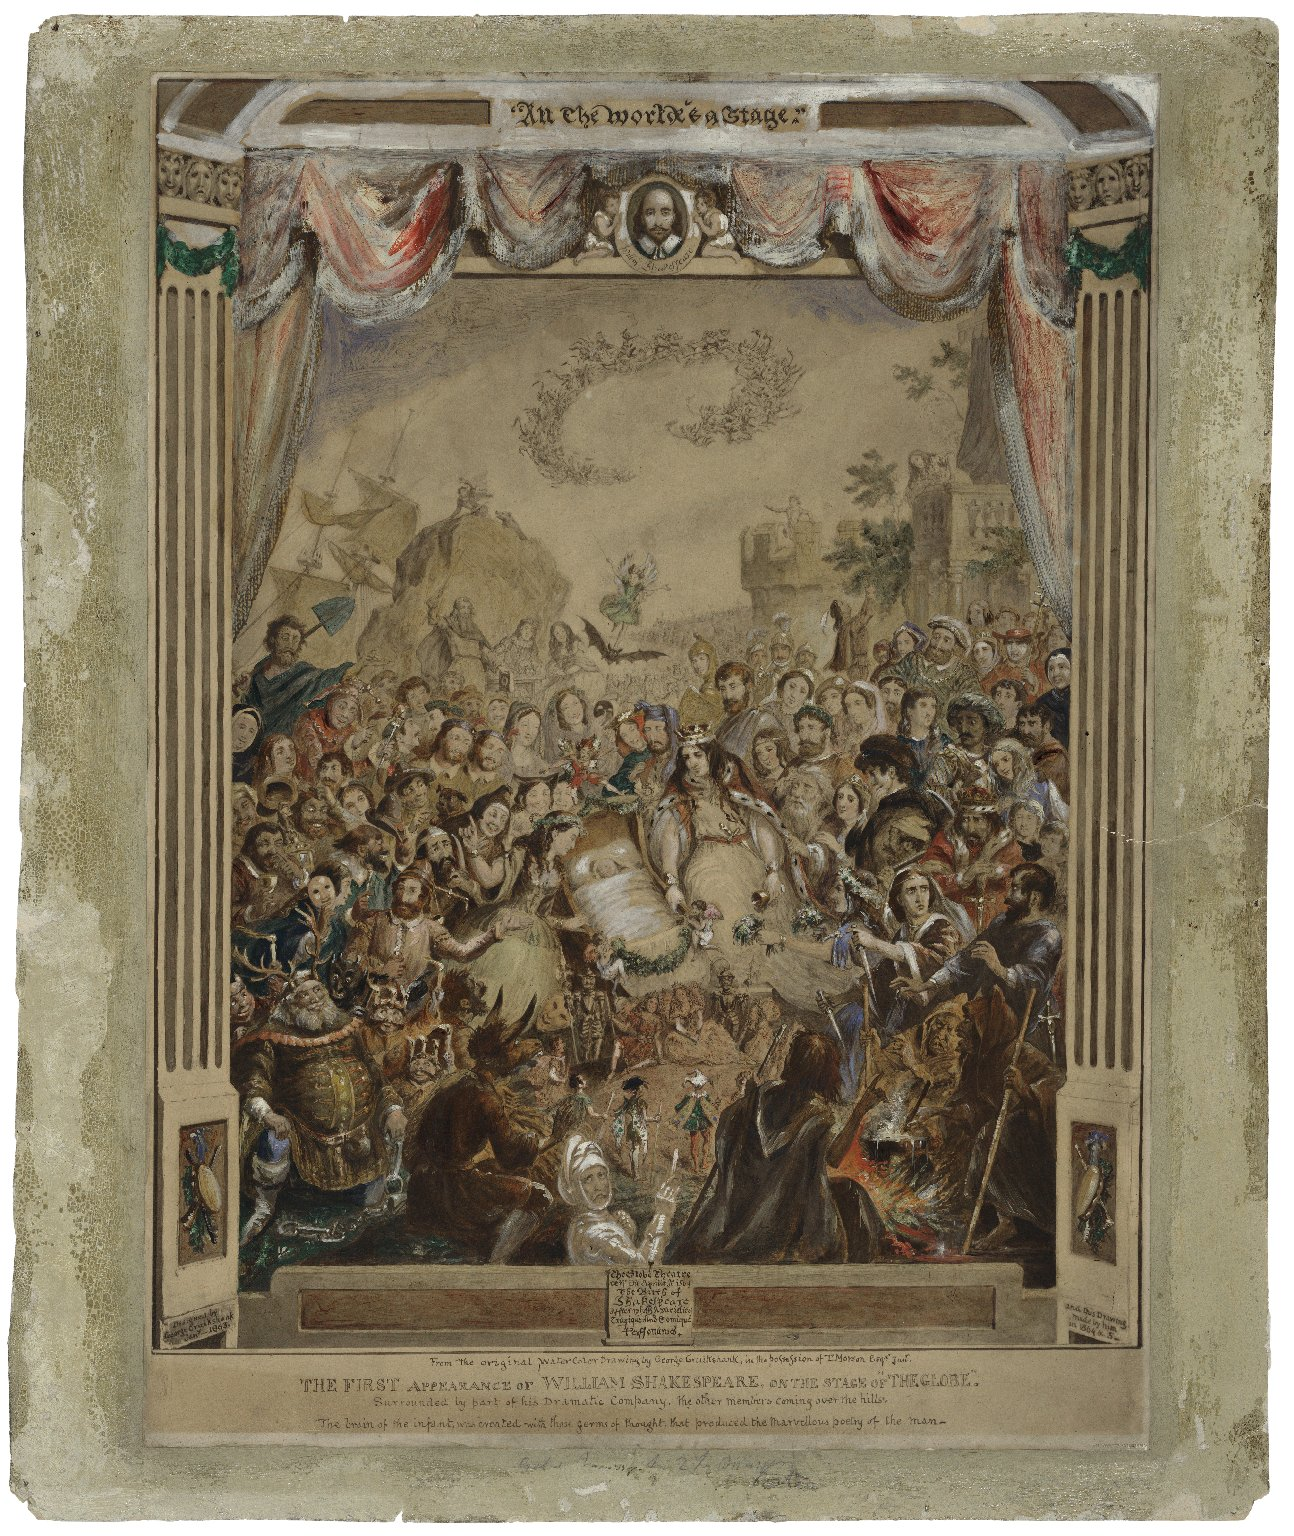 """The first appearance of William Shakespeare, on the stage of """"The Globe,"""" surrounded by part of his Dramatic Company, the other members coming over the hills [graphic] / designed by George Cruikshank, Jany., 1863 ; and this drawing made by him in 1864 & 5."""